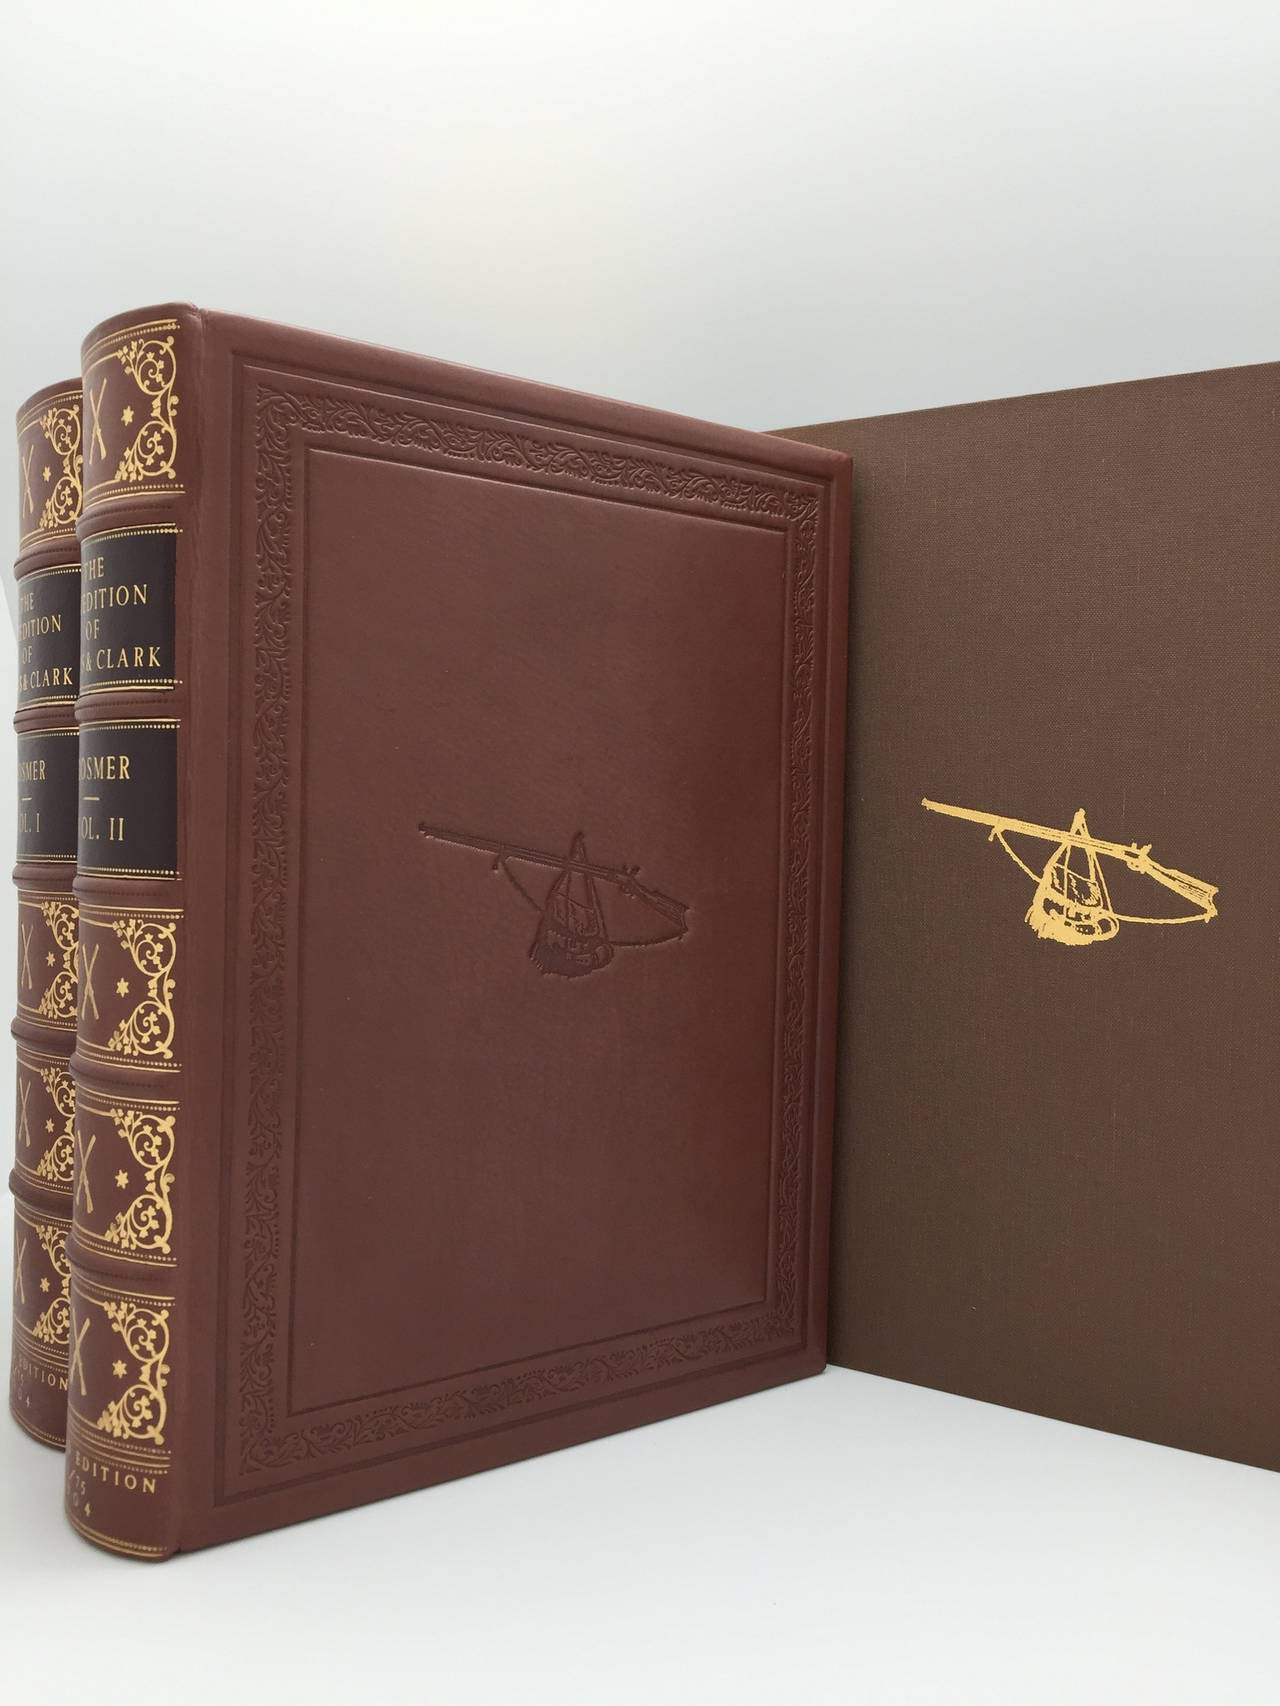 1904 Expedition of Captains Lewis and Clark, Two-Volume Limited Edition, No. 1 of 75